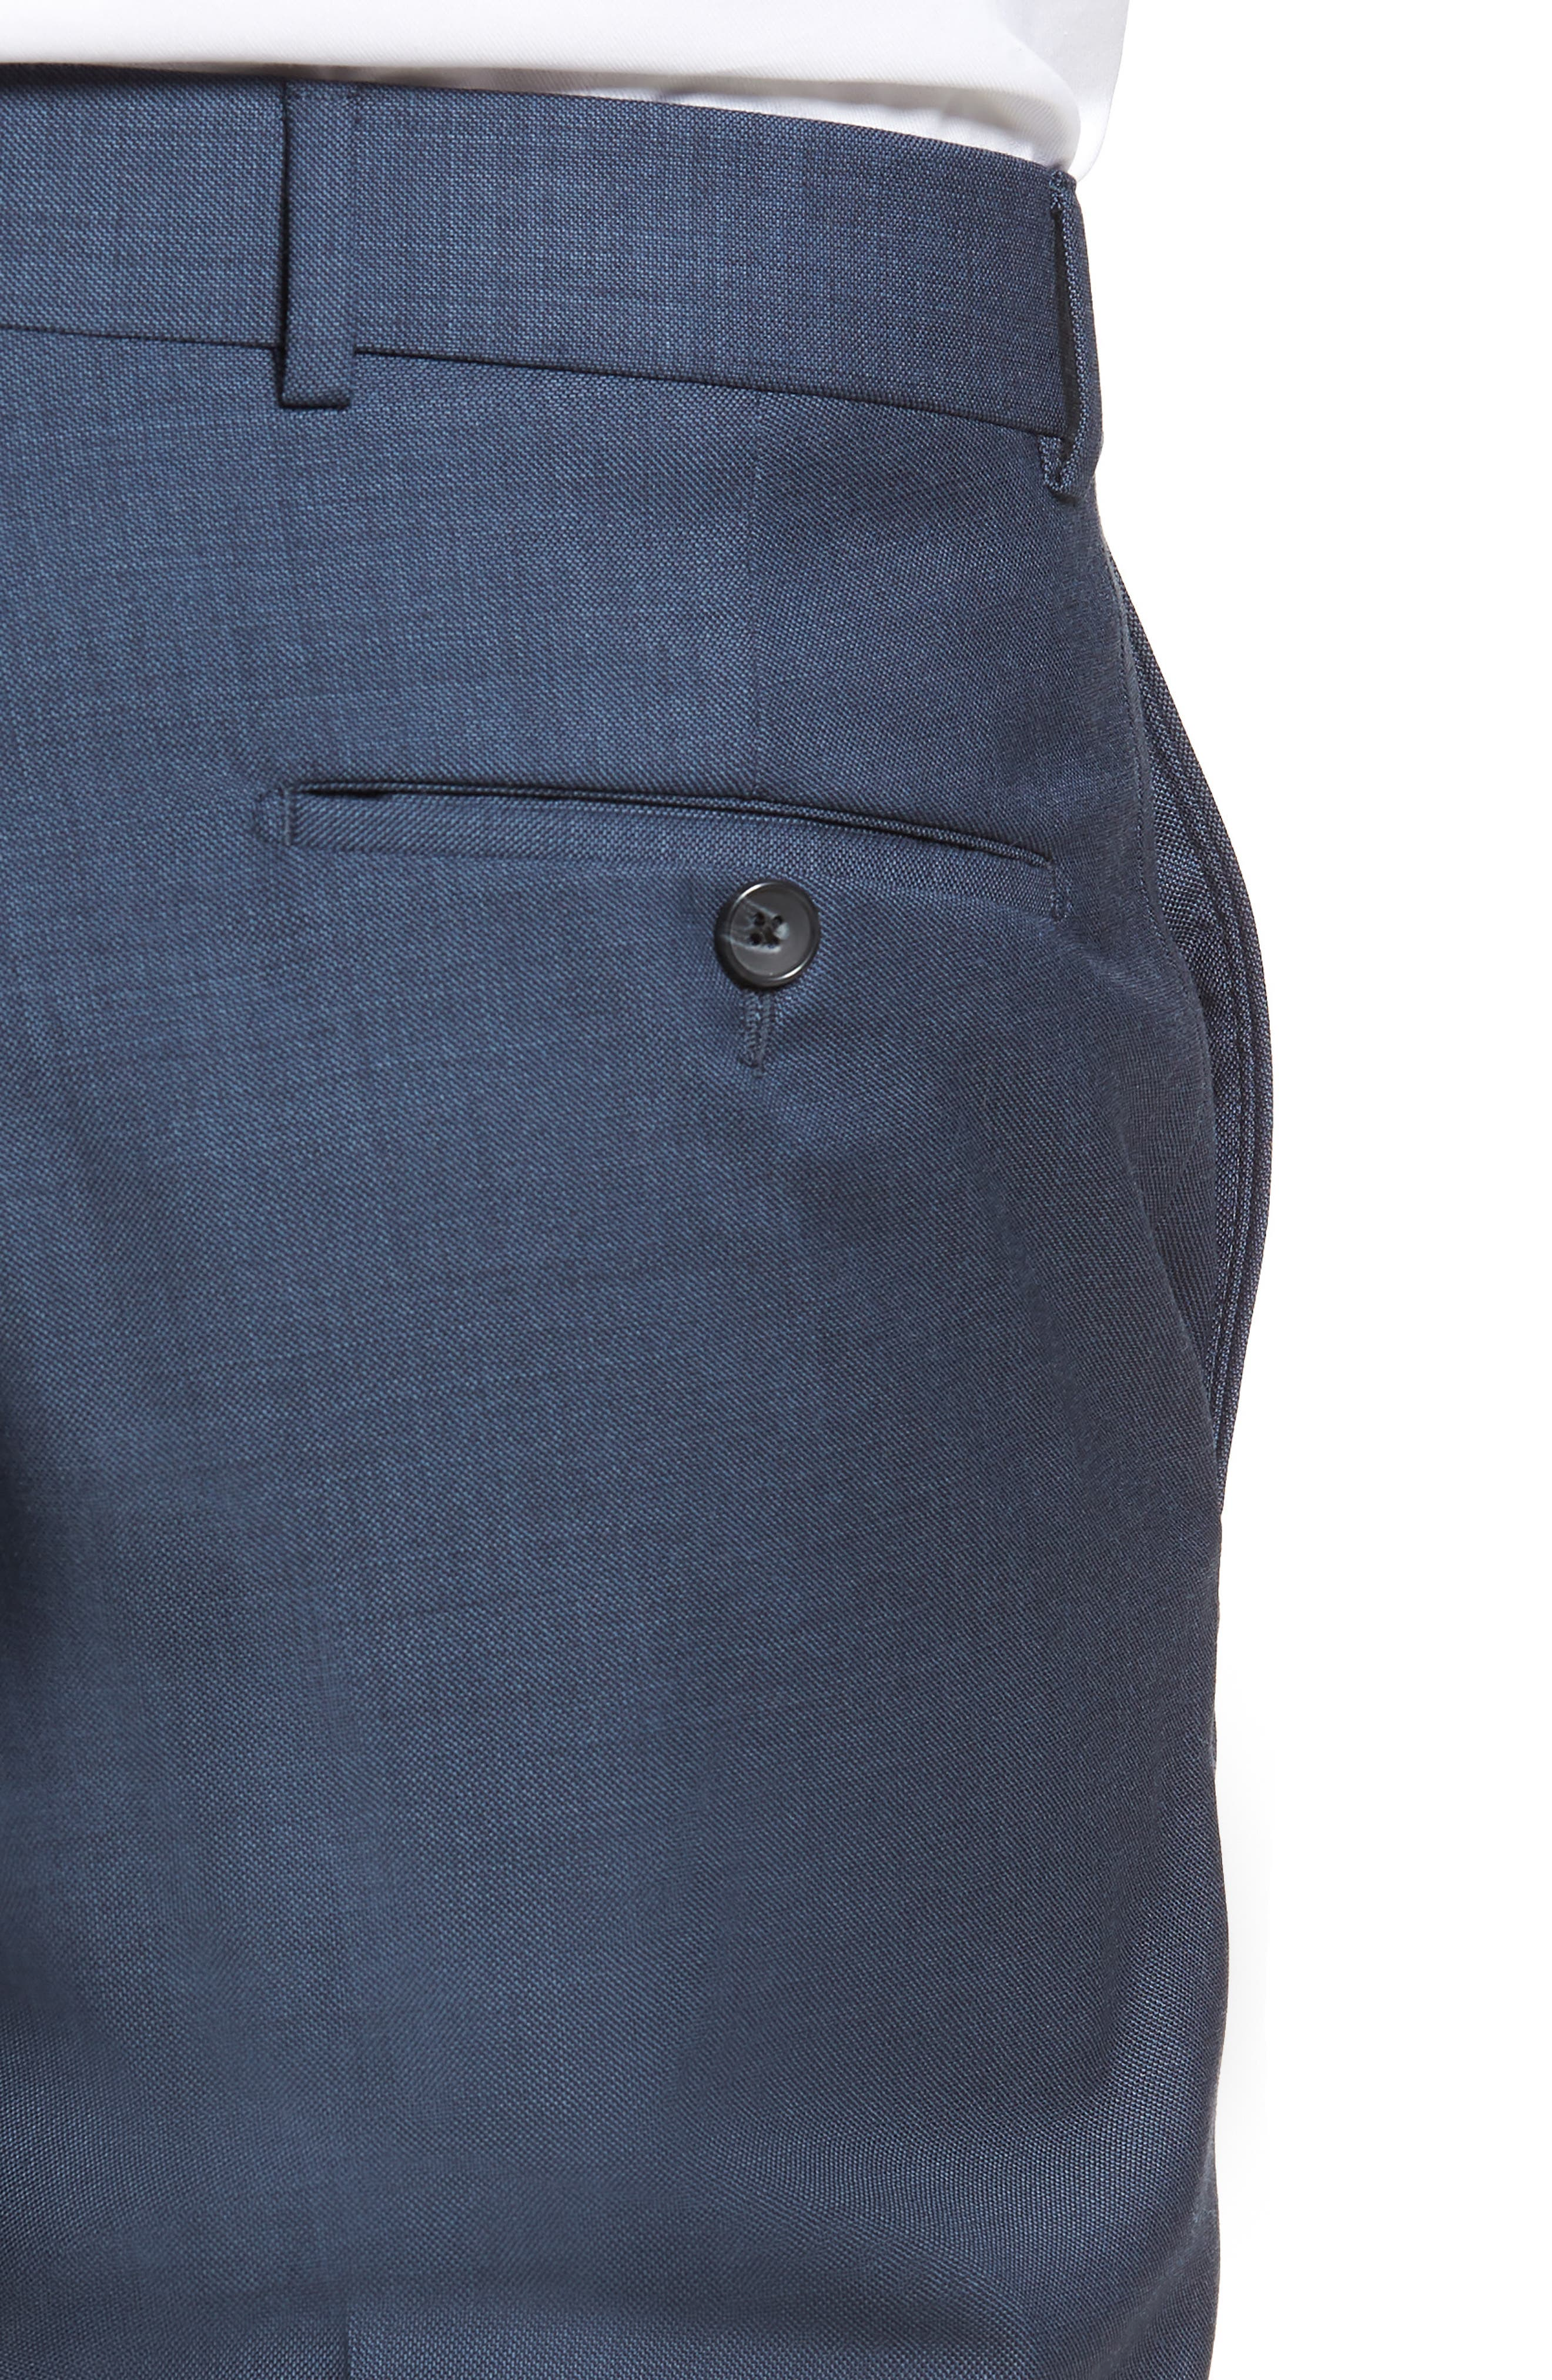 Flat Front Sharkskin Wool Trousers,                             Alternate thumbnail 4, color,                             NEW NAVY